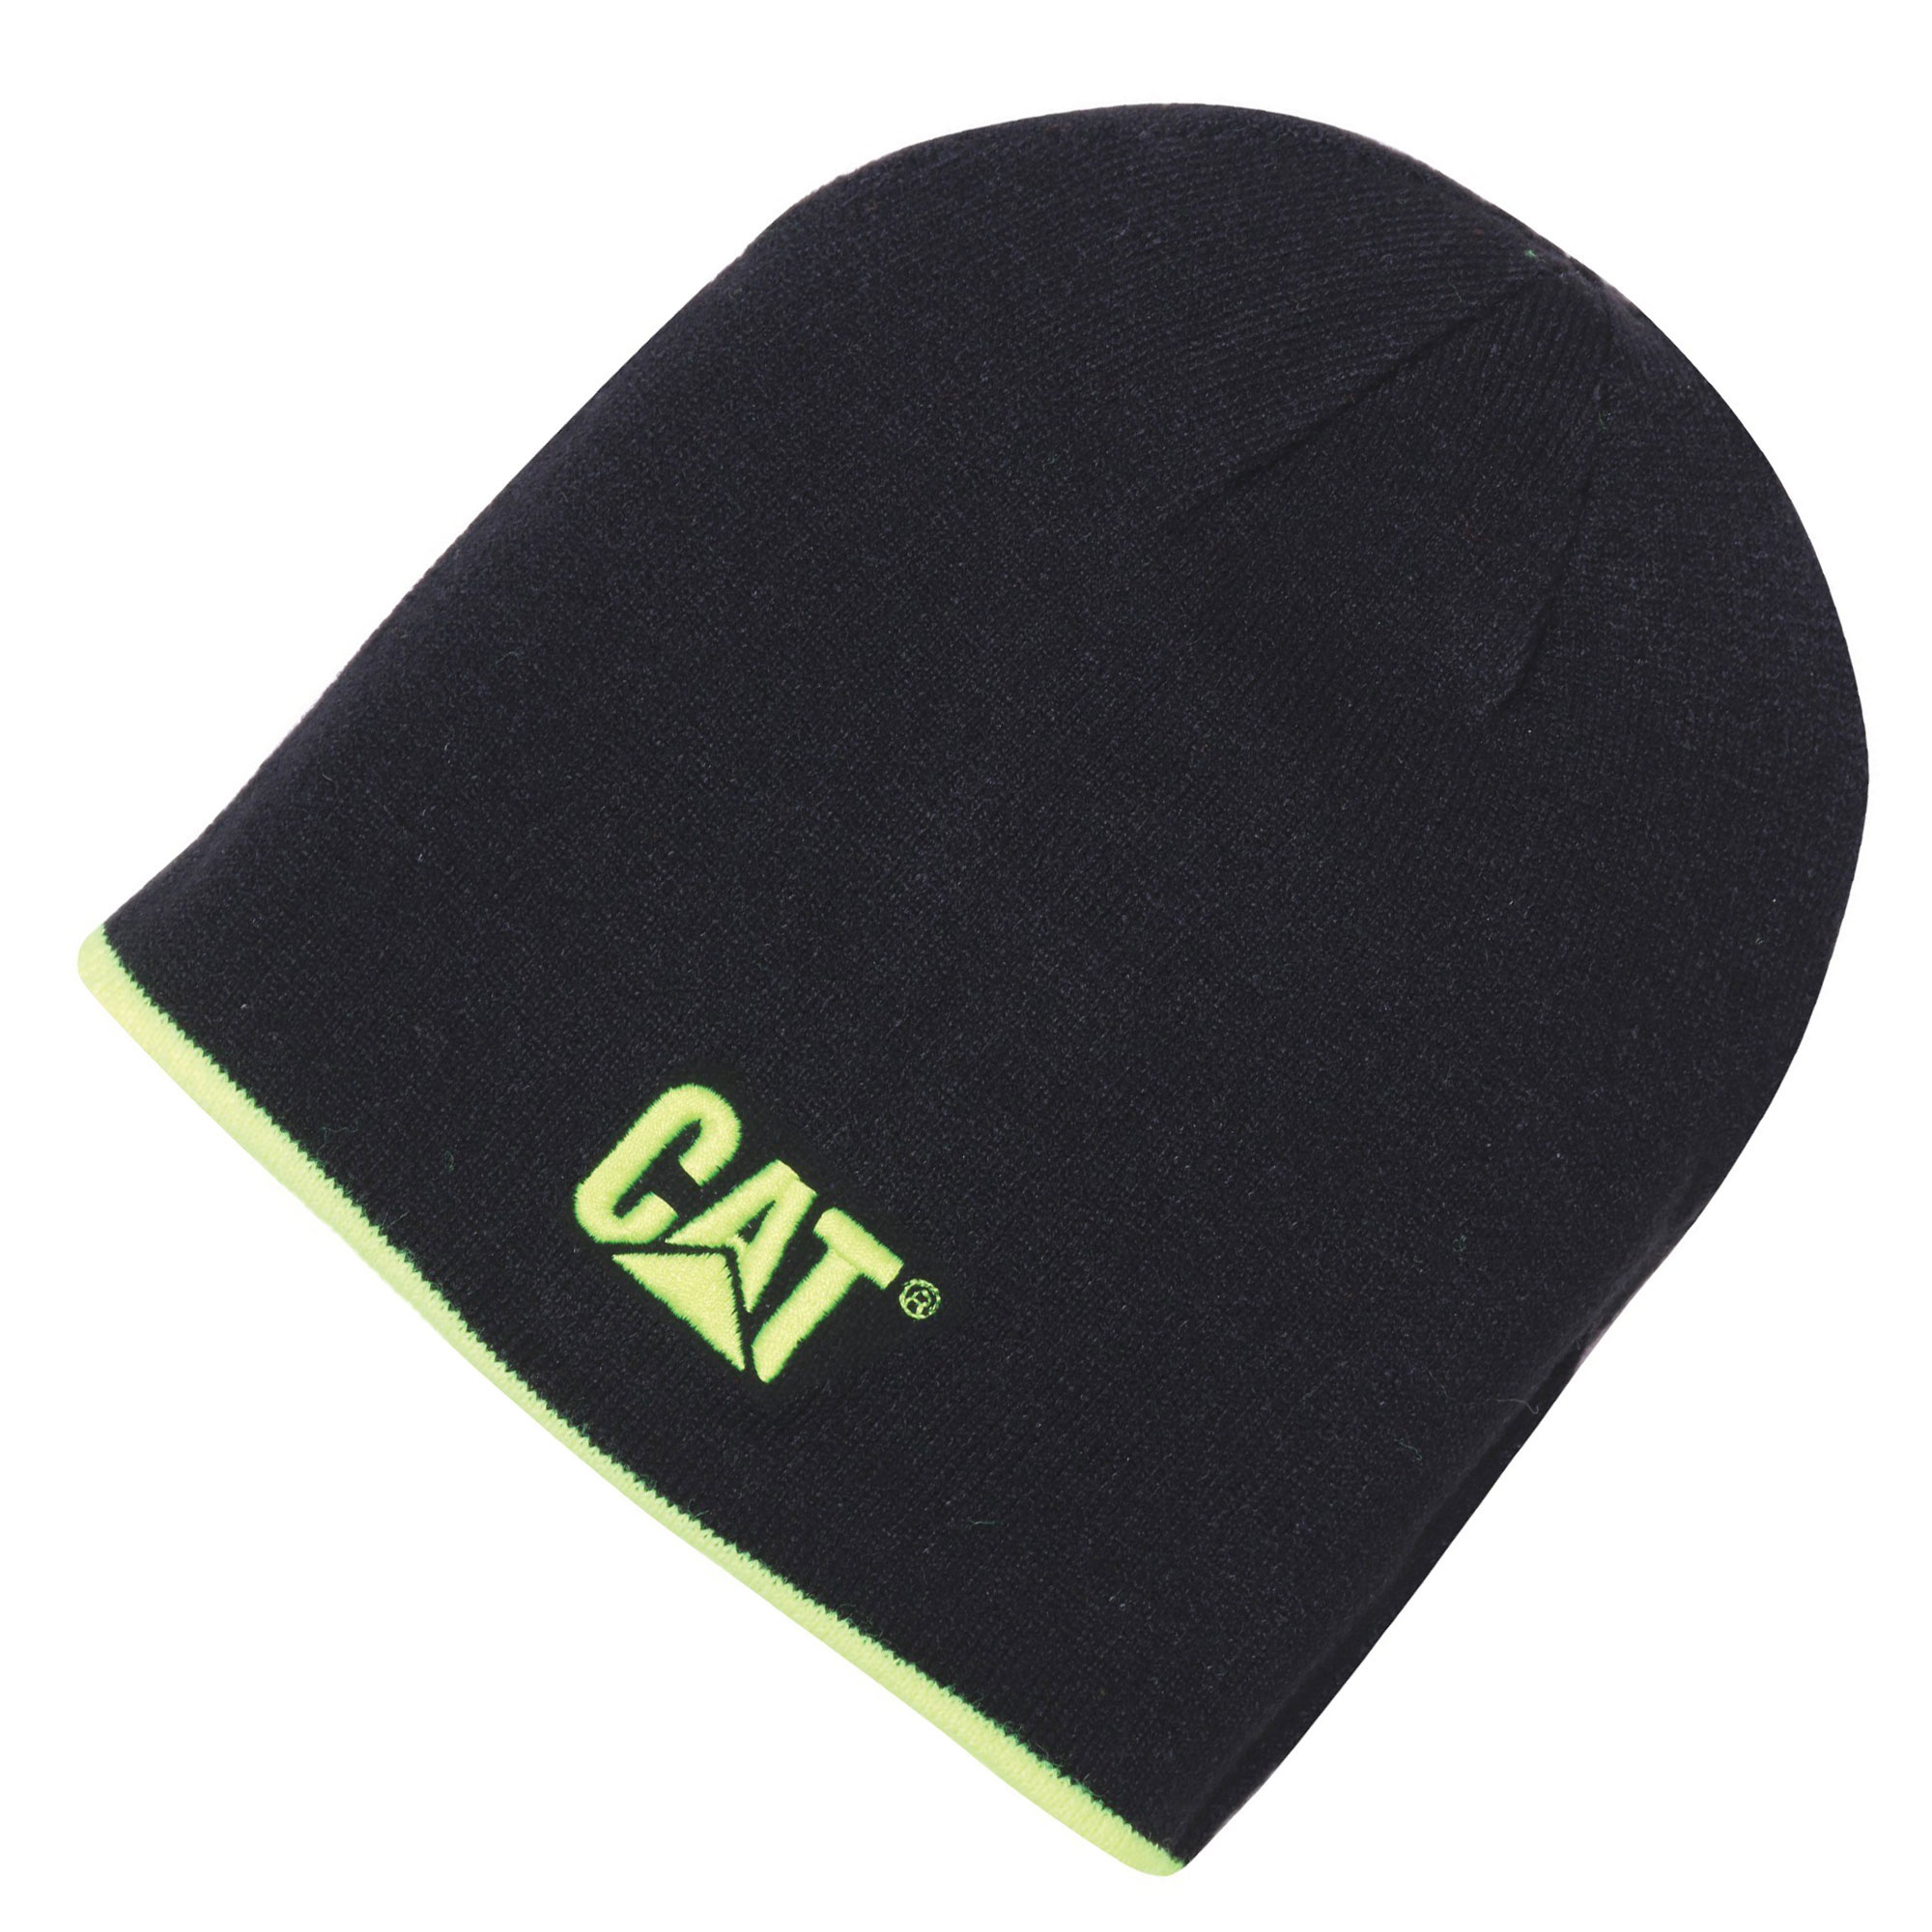 64b5dcba62e CAT 1120070 CAT Reversible Logo Beanie Hat One Size - Black